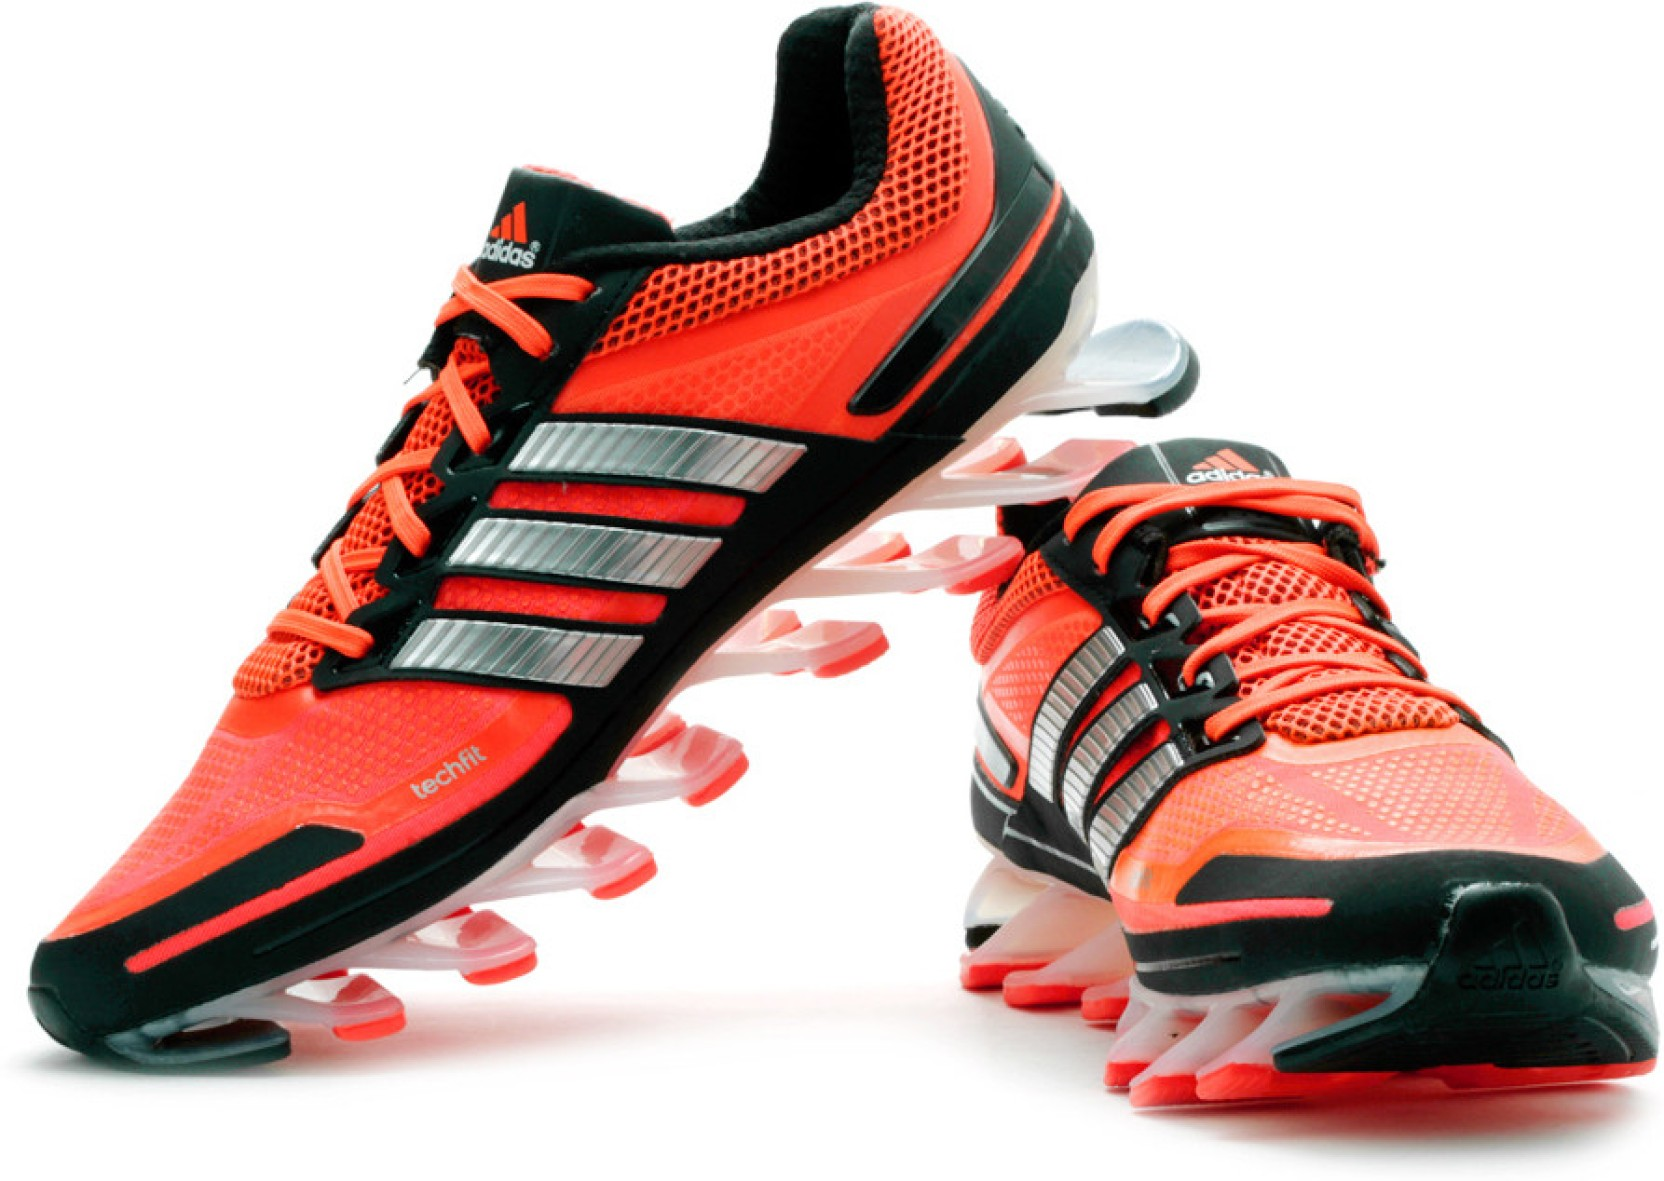 brand new 9d27c a8d98 Adidas Springblade M Running Shoes For Men